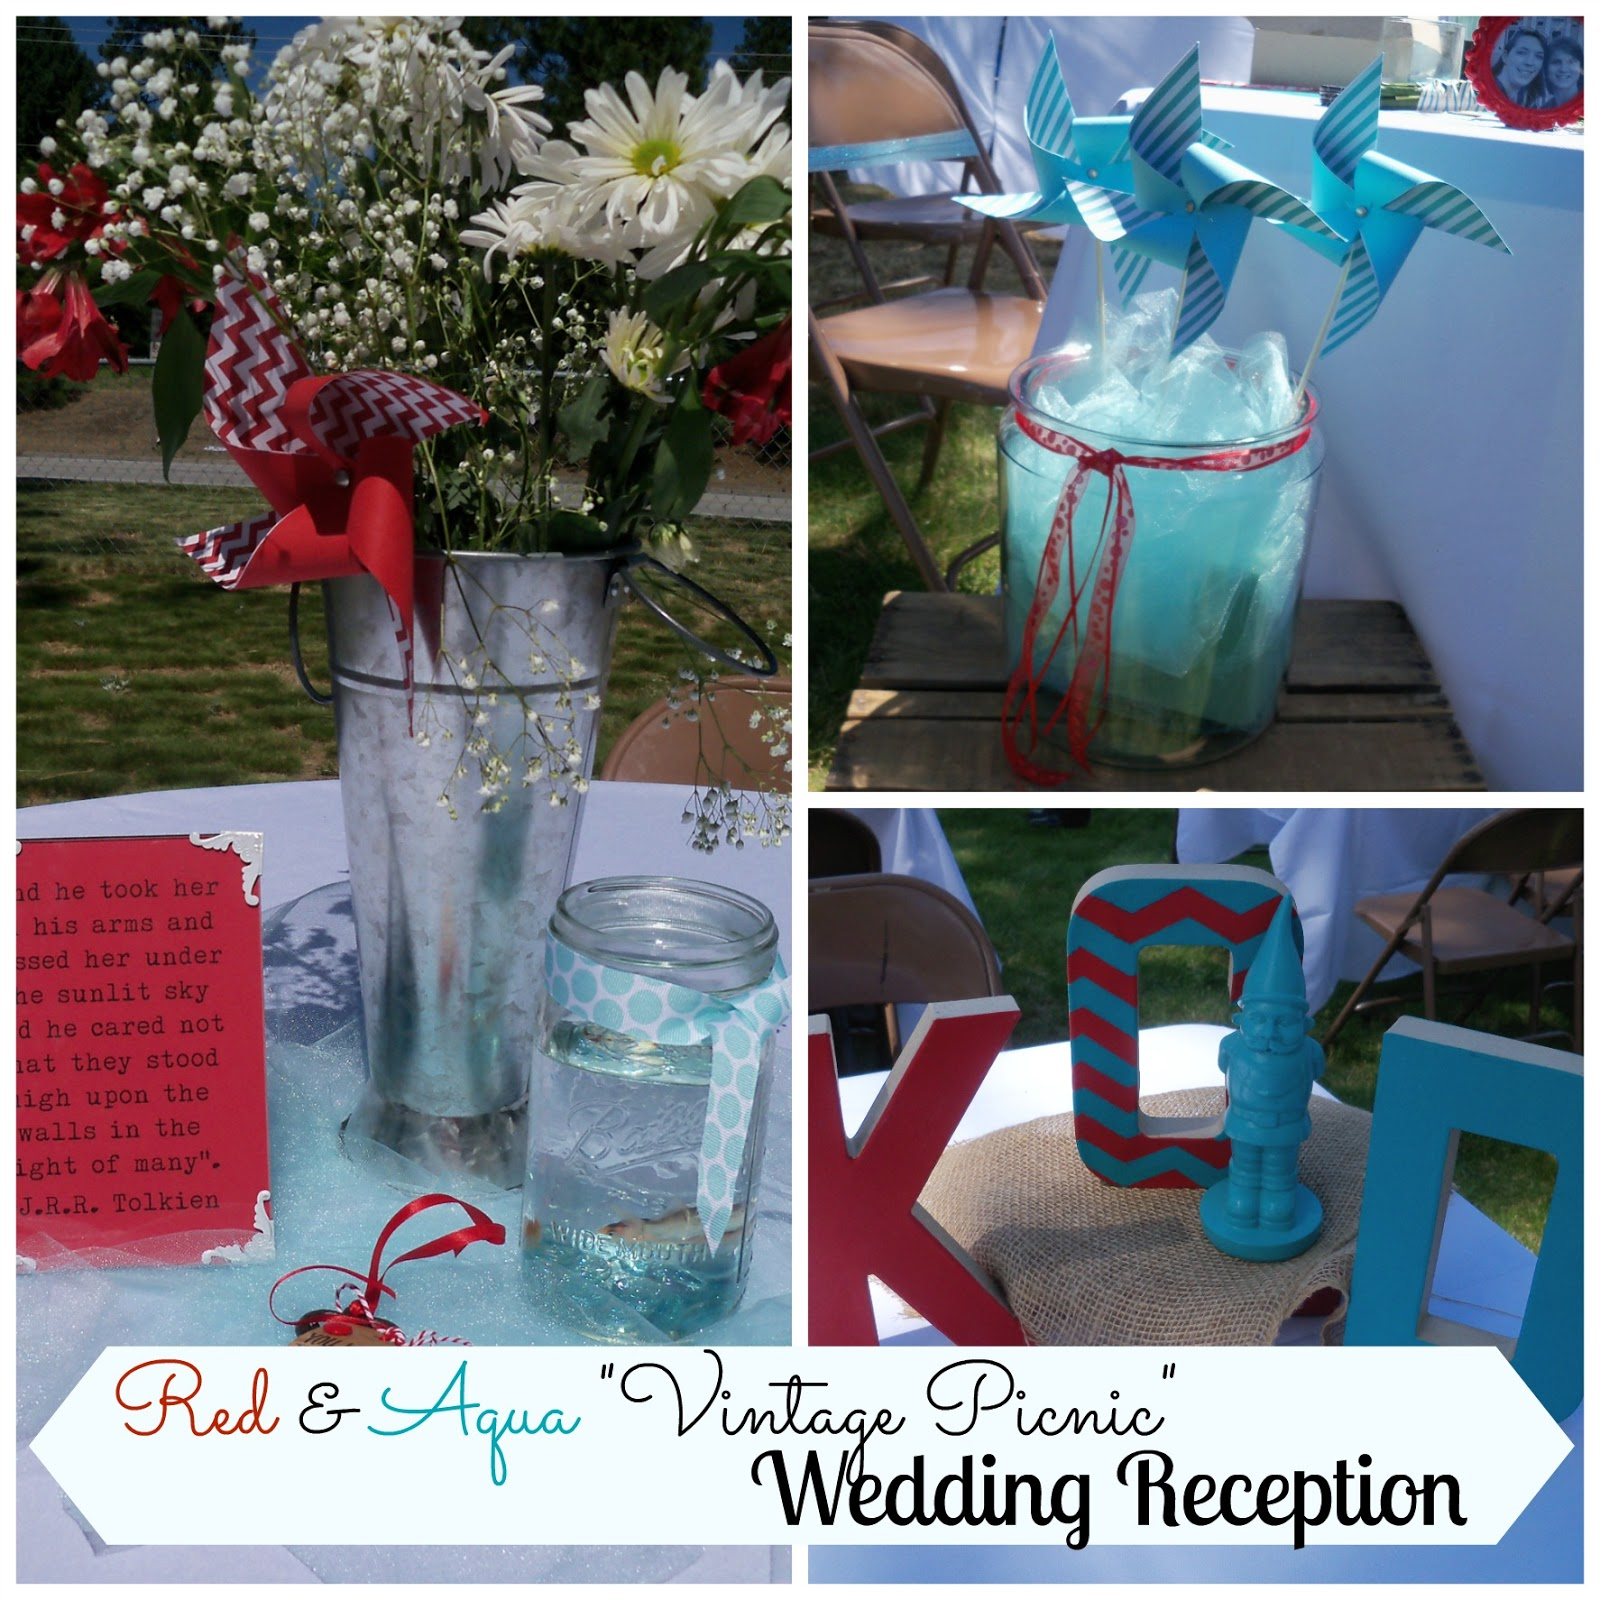 Clares Contemplations Red Aqua And Cute All Over Vintage Picnic